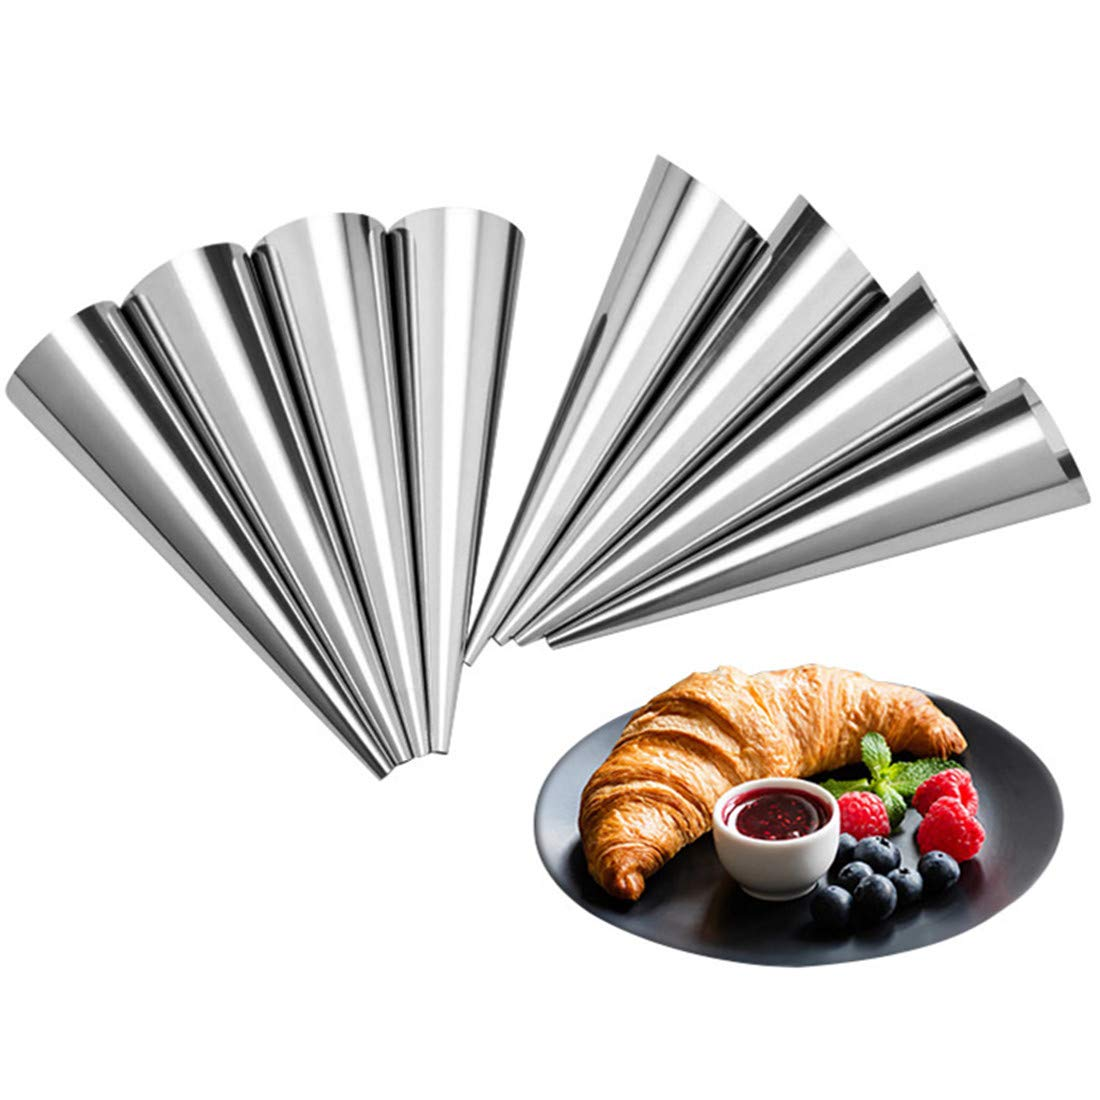 Tebery 30 Pcs Lady lock forms,Stainless Steel Pastry Cream Horn Molds,Free Standing Cone Shape by Tebery